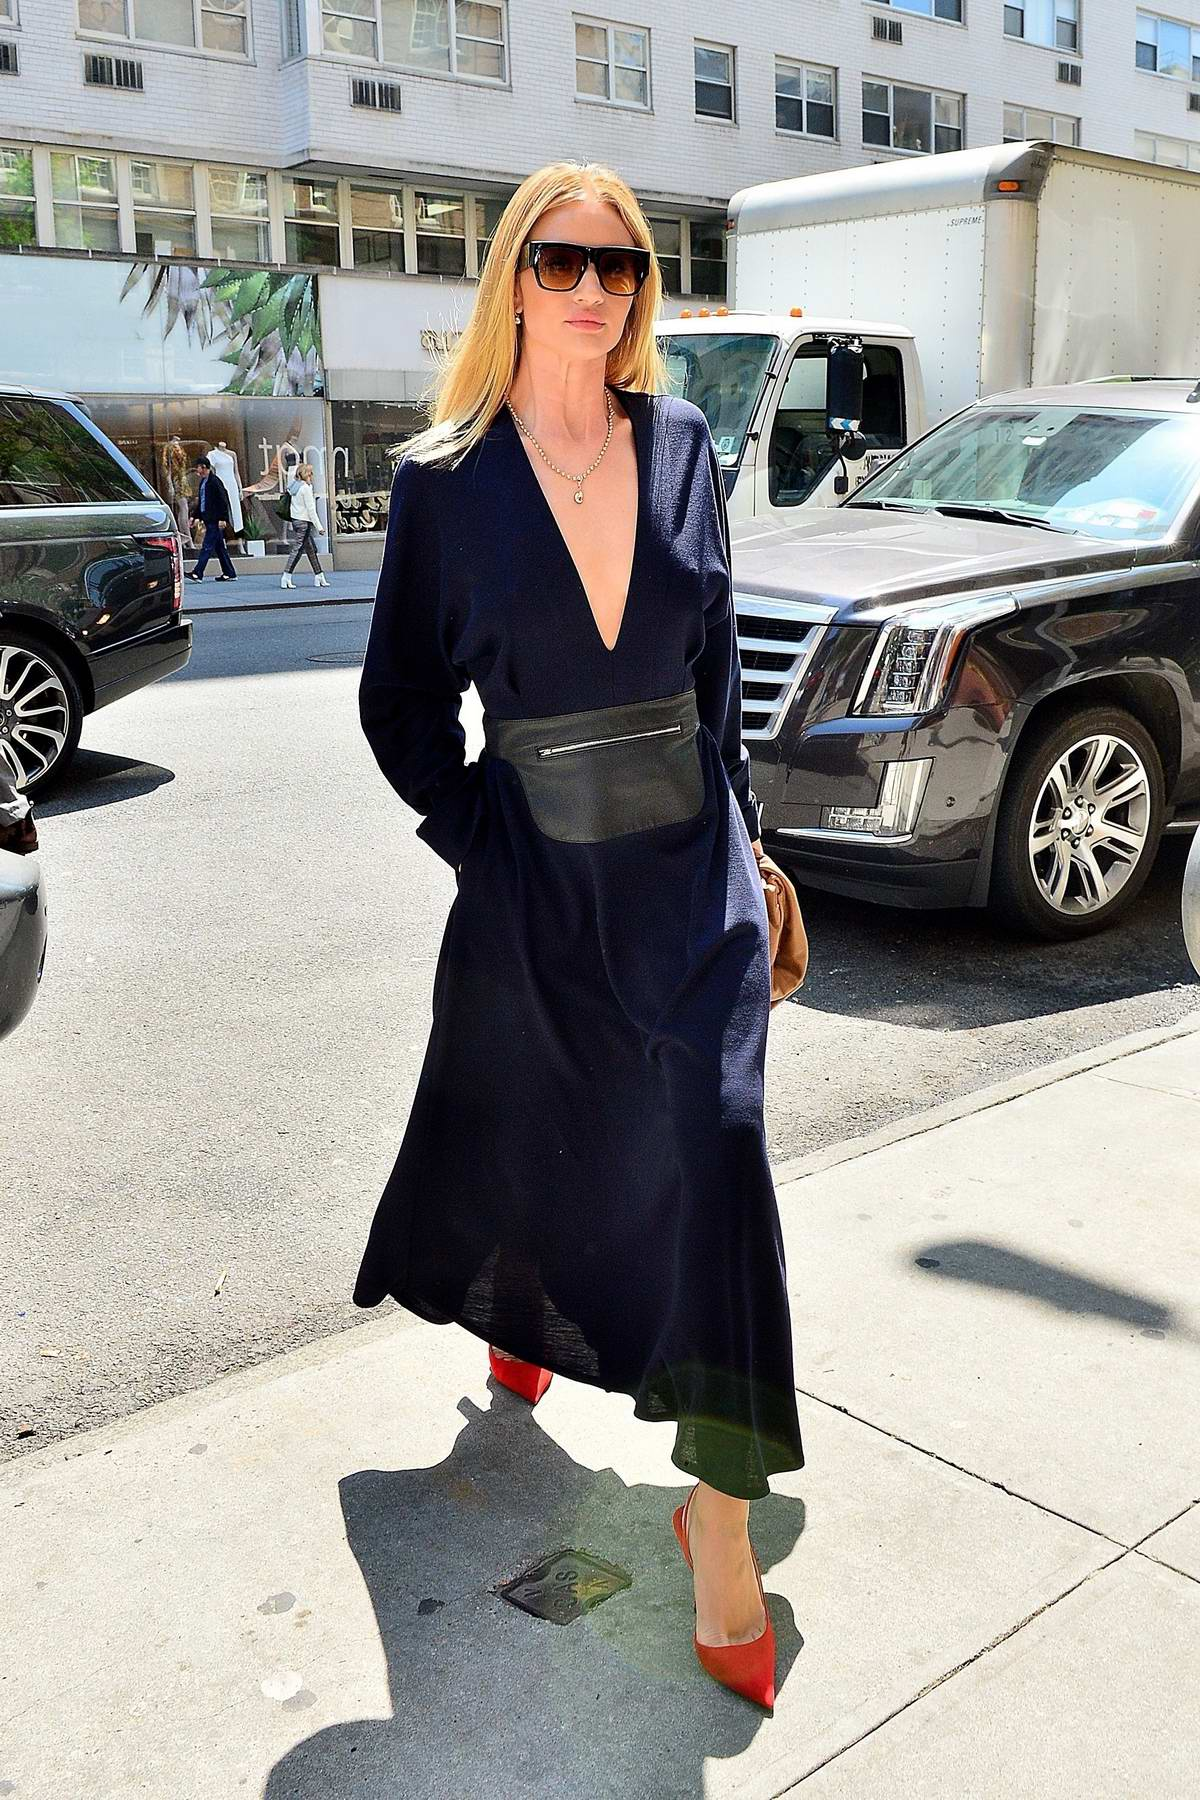 Rosie Huntington-Whiteley looks striking in a blue dress as she steps out in New York City